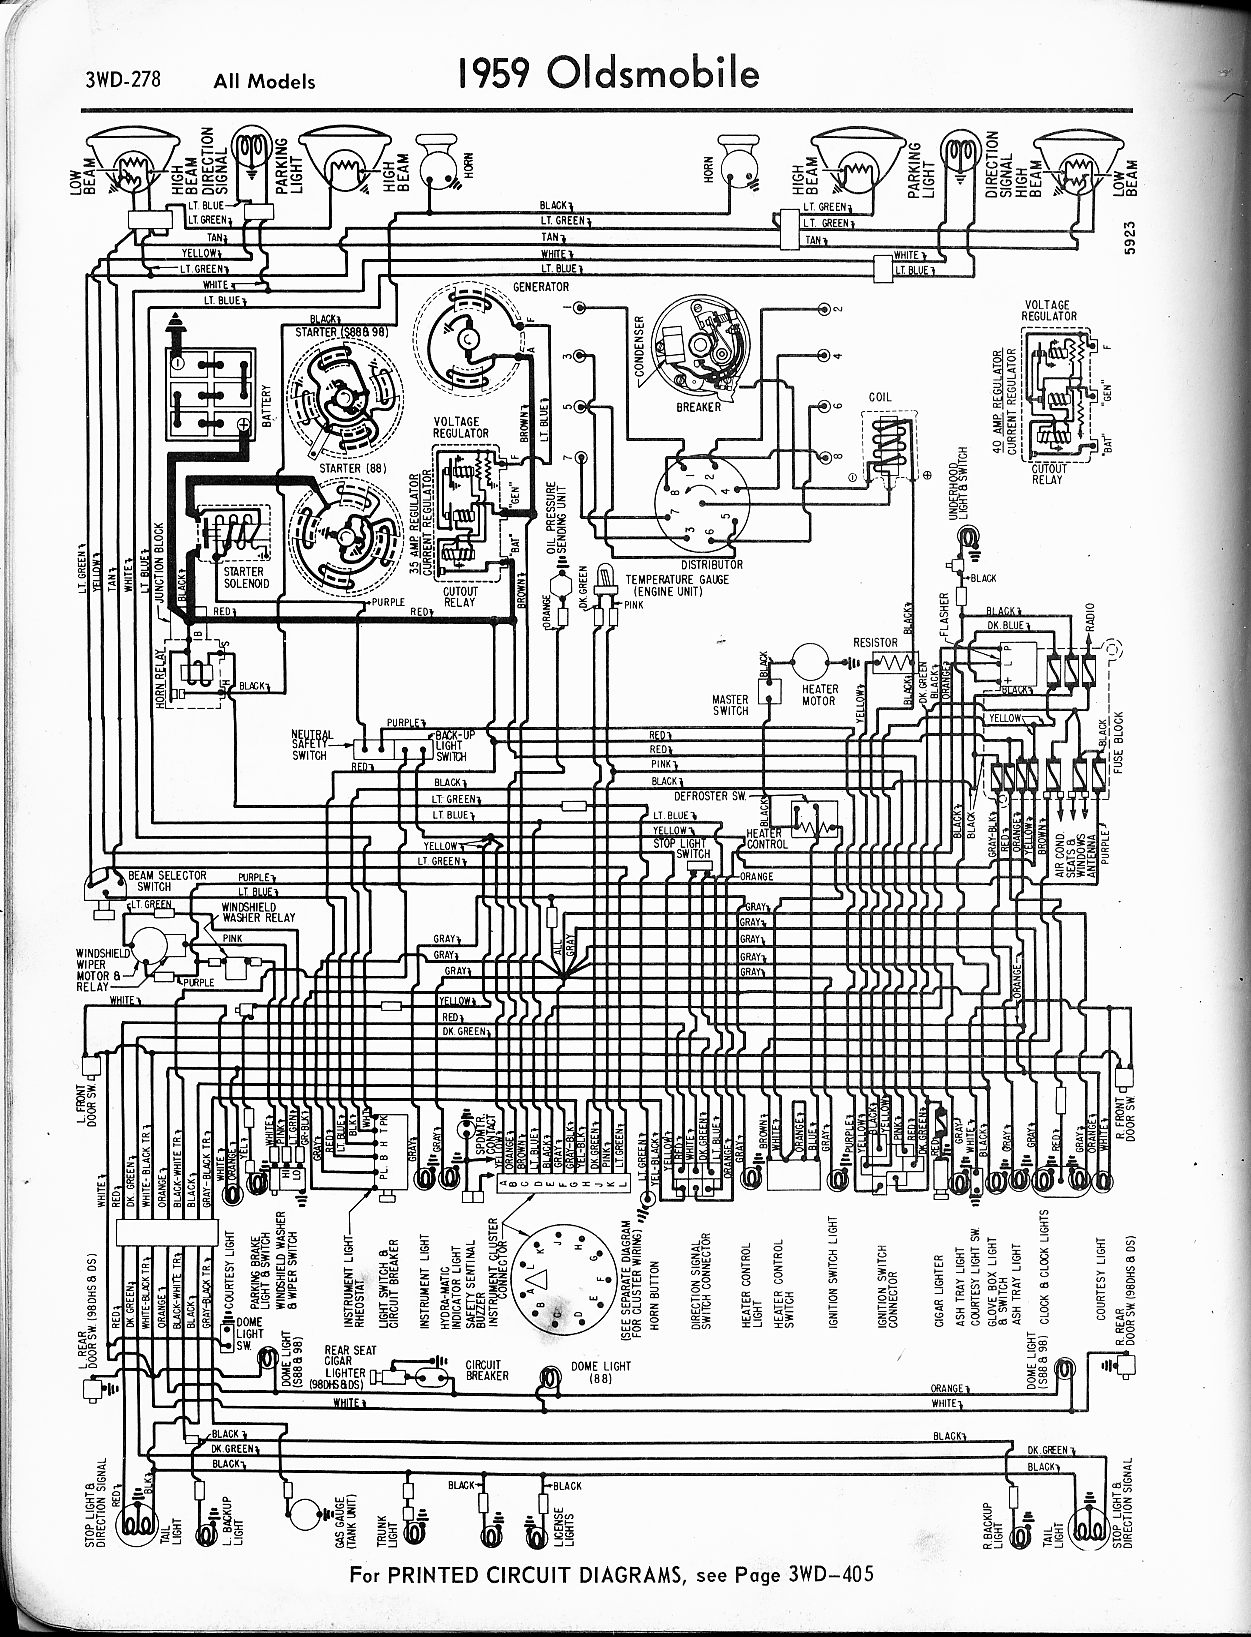 Oldsmobile vin location wiring diagram and fuse box diagram images - Oldsmobile Wiring Diagrams